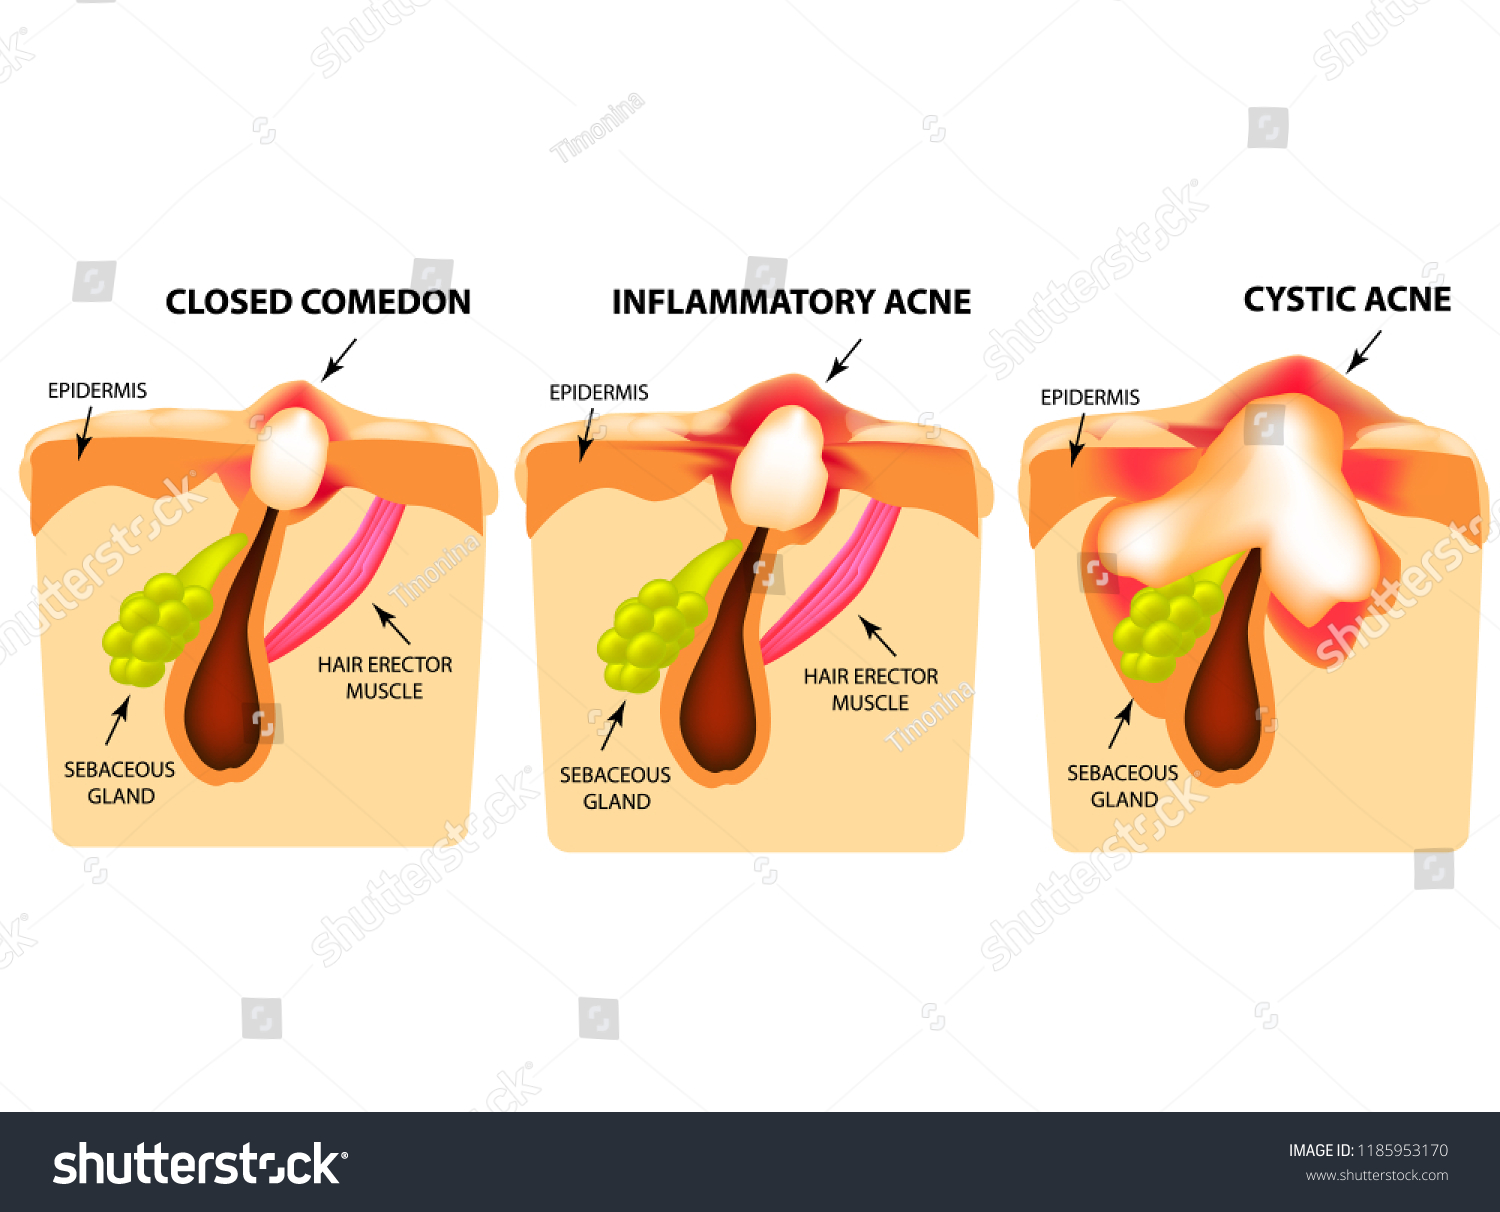 hight resolution of closed comedones inflammatory acne cystic acne the structure of